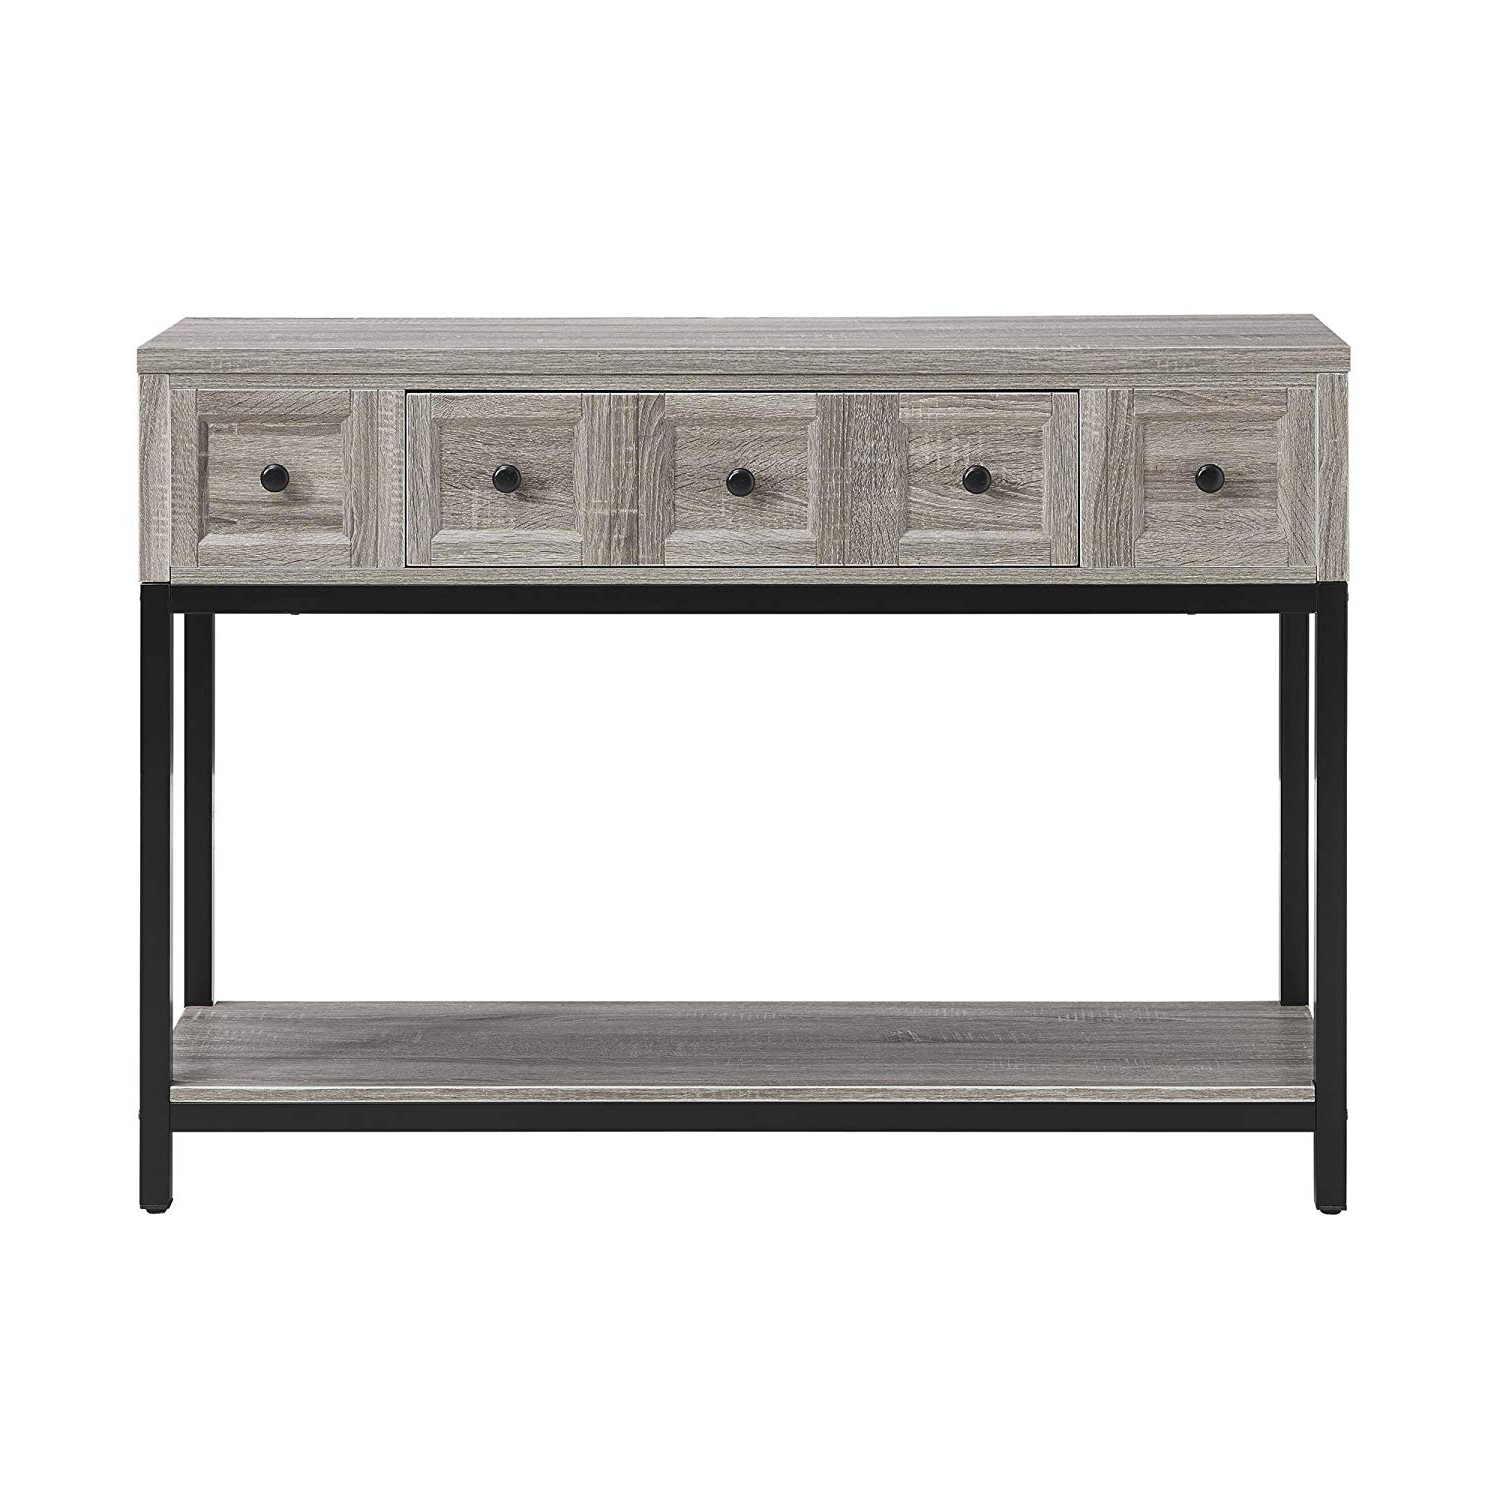 Amazon: Altra Furniture Console Table In Sonoma Oak Finish In Most Current Parsons Grey Solid Surface Top & Dark Steel Base 48x16 Console Tables (View 5 of 20)